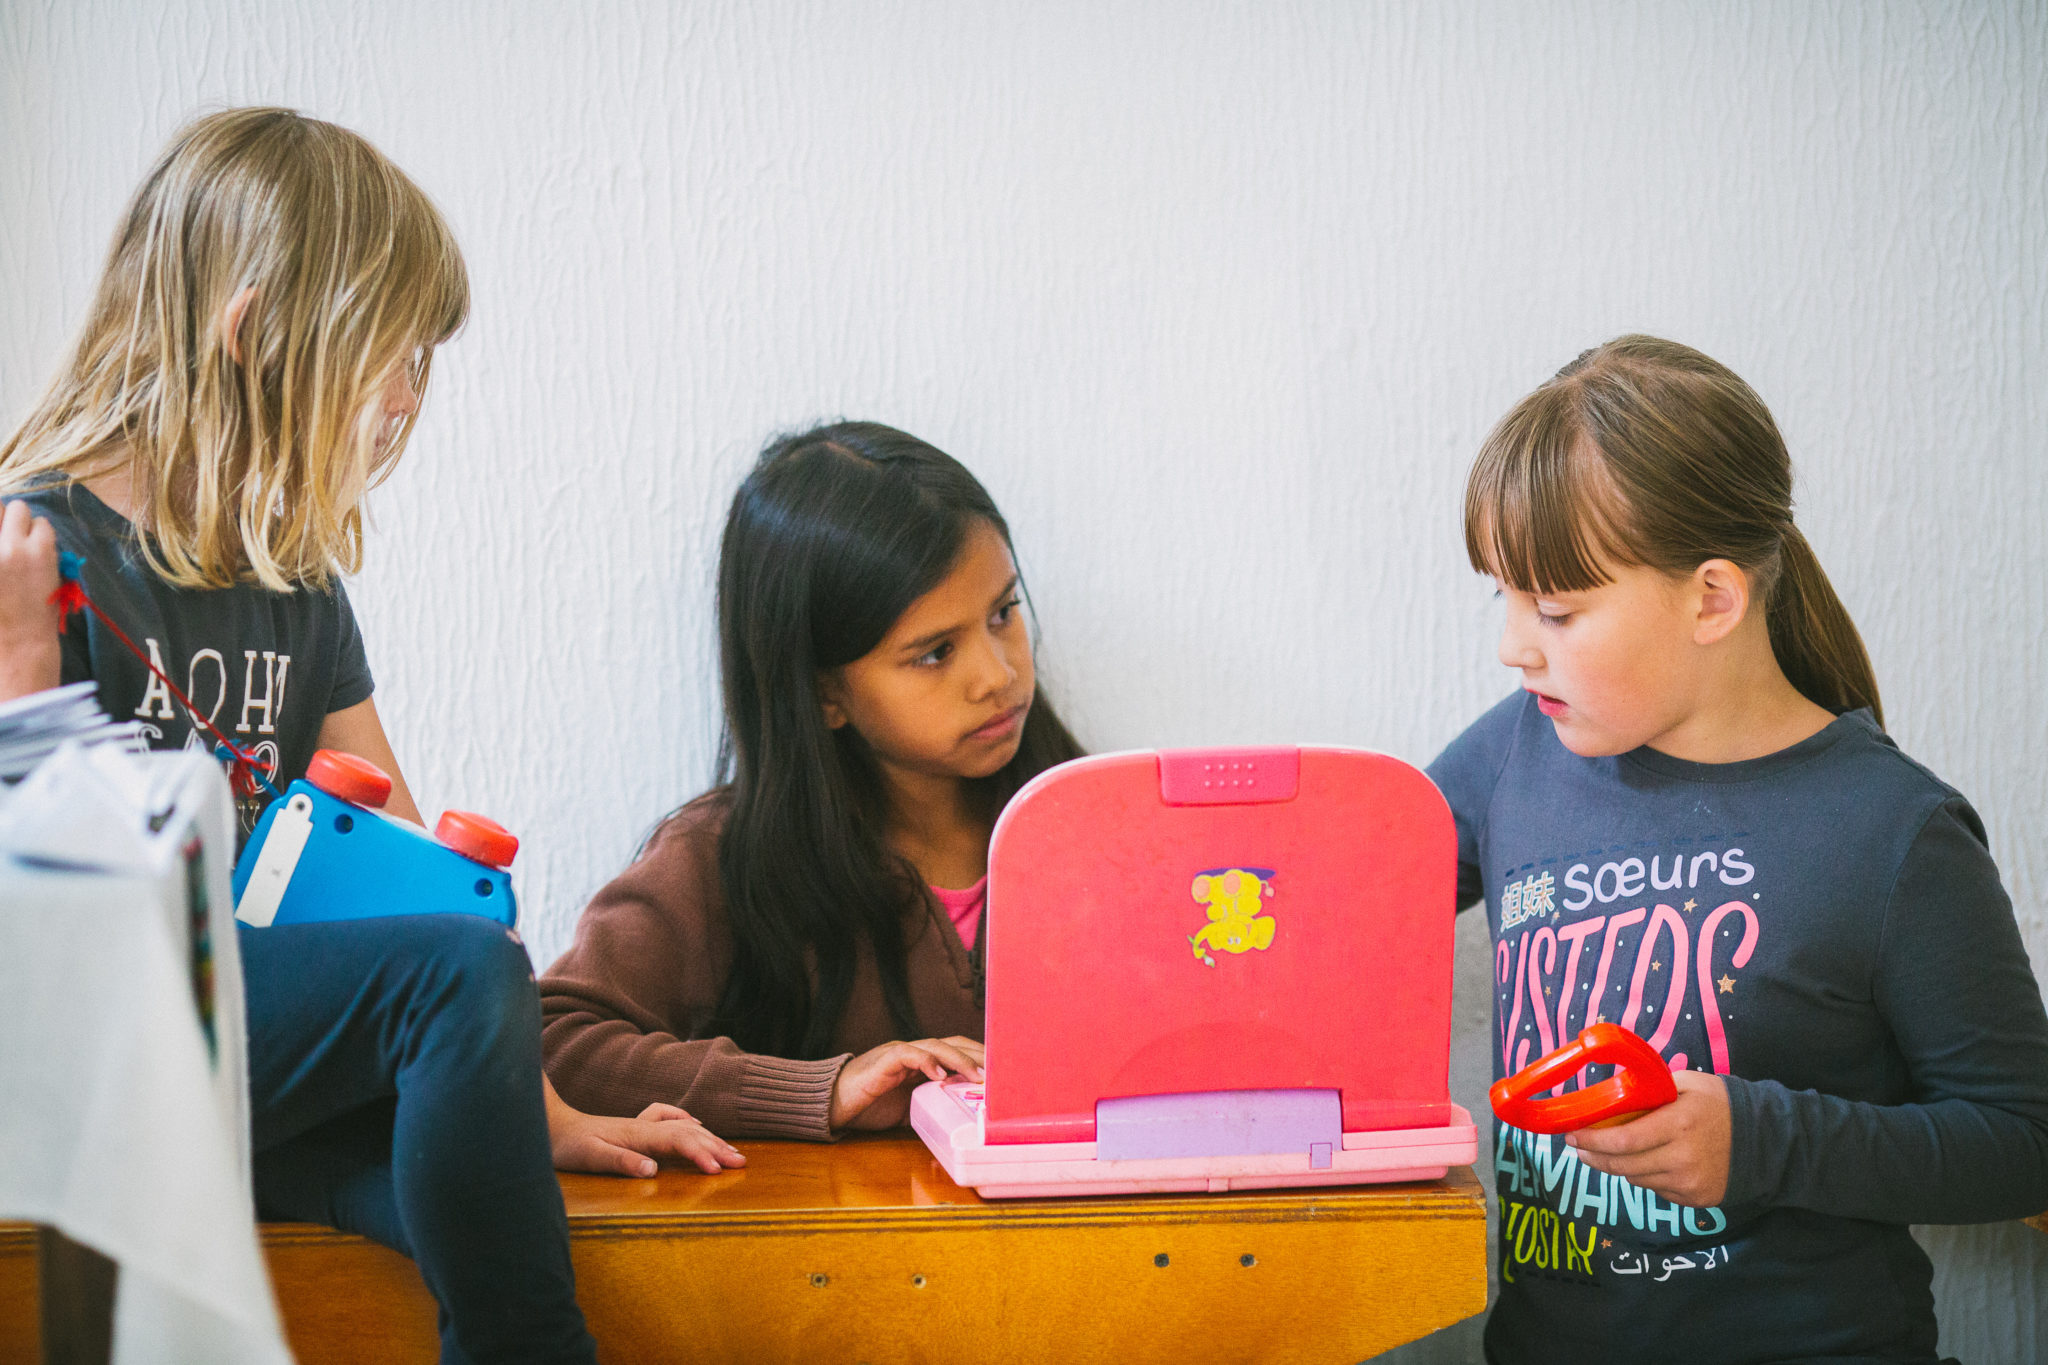 students gathered around a laptop